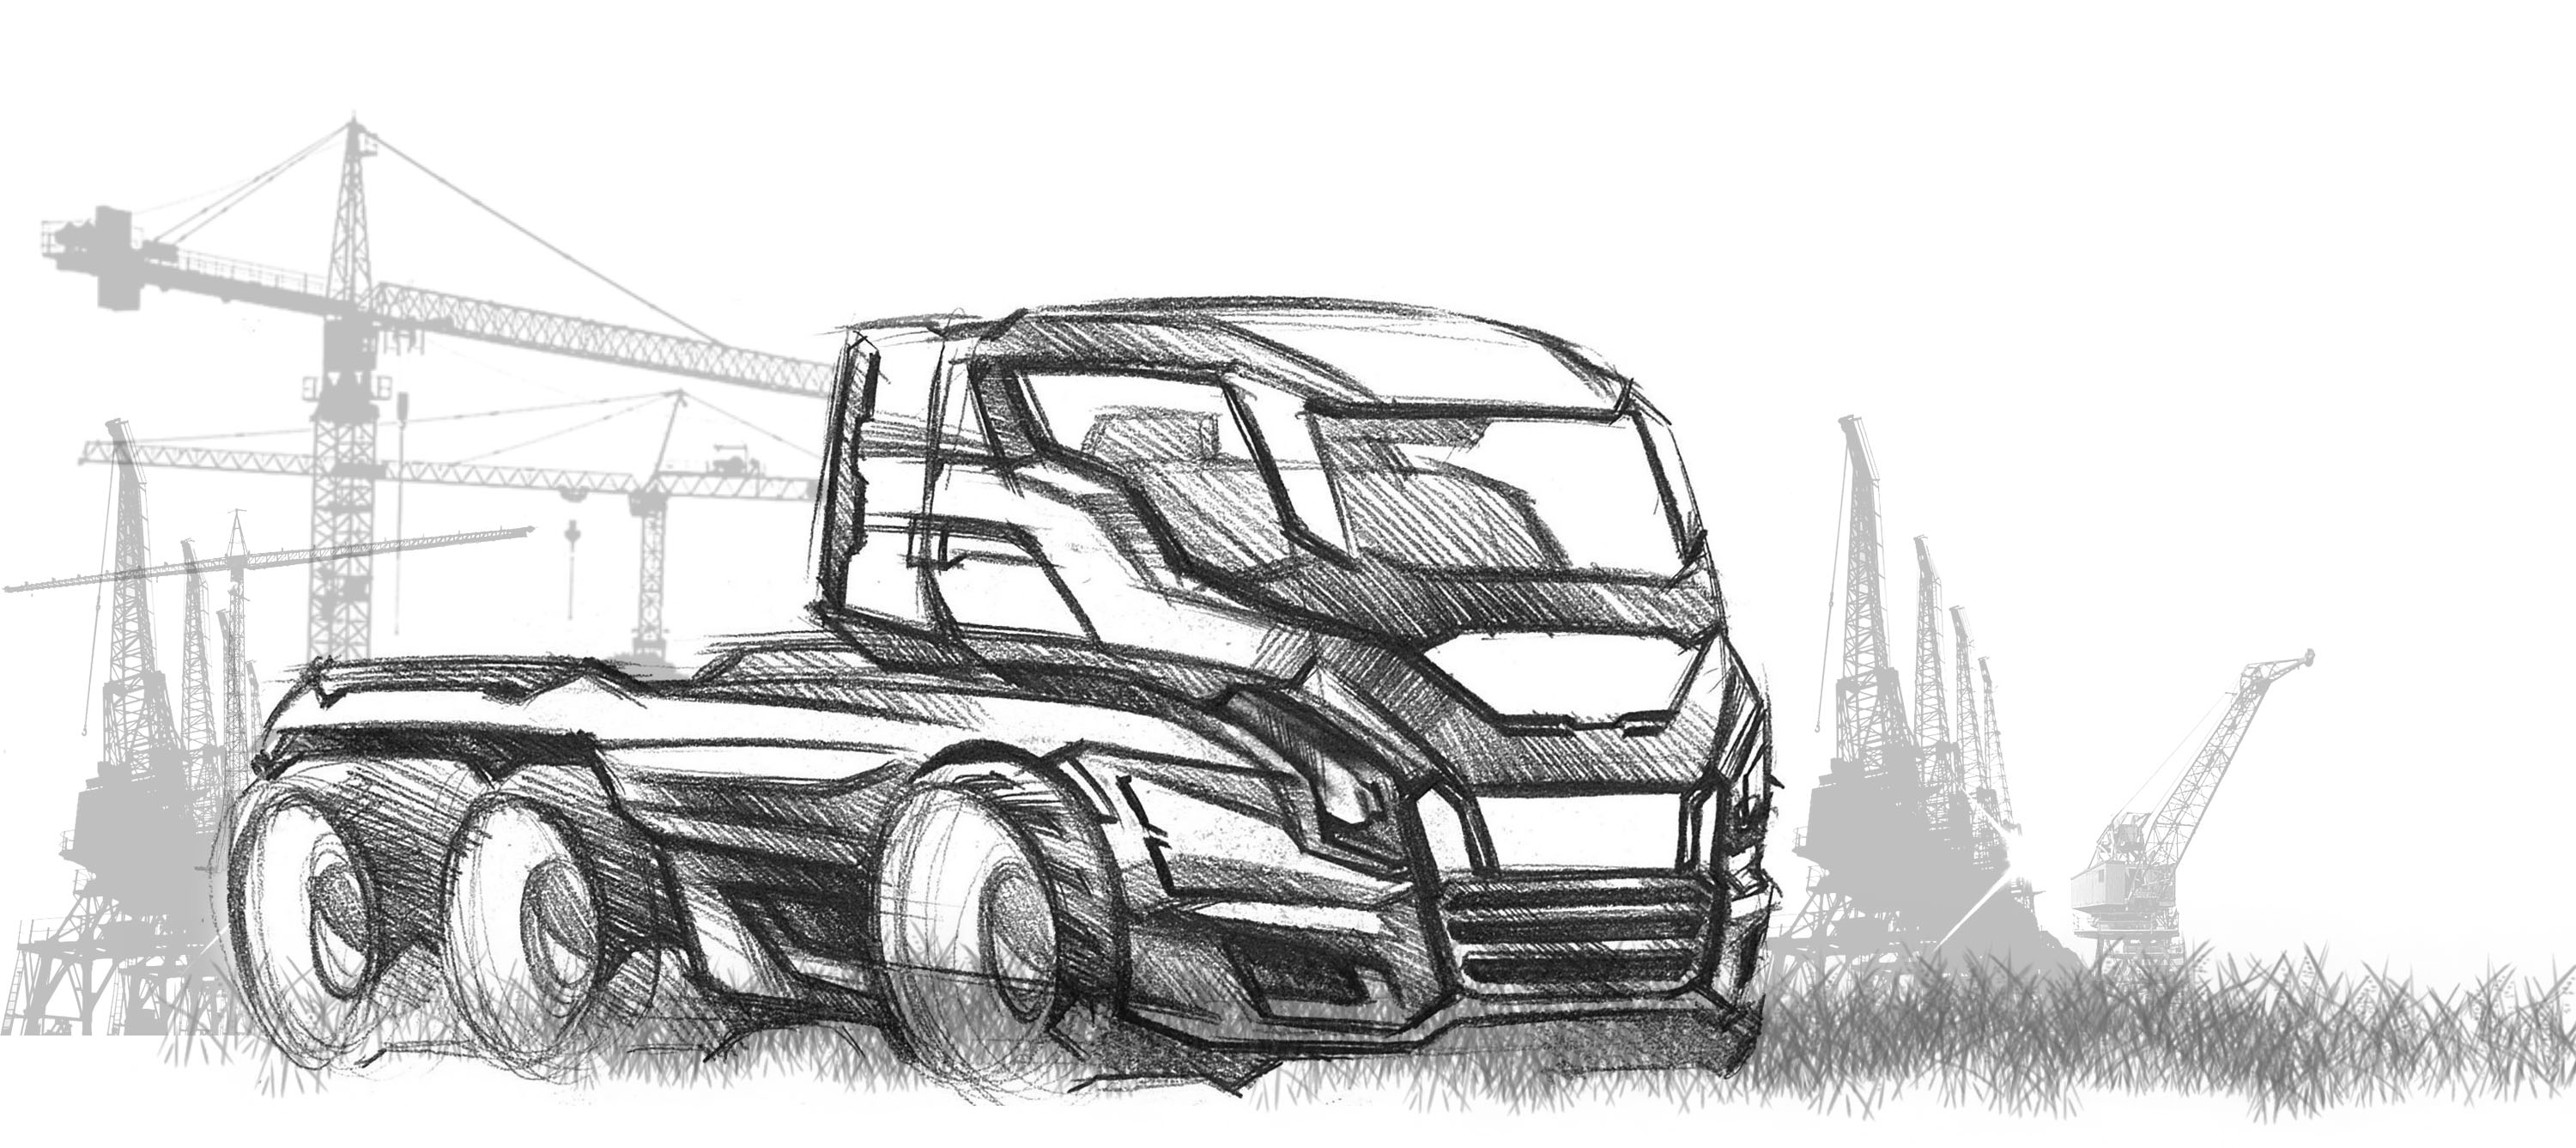 Concept Truck Sketch By Zion Wu At Coroflot